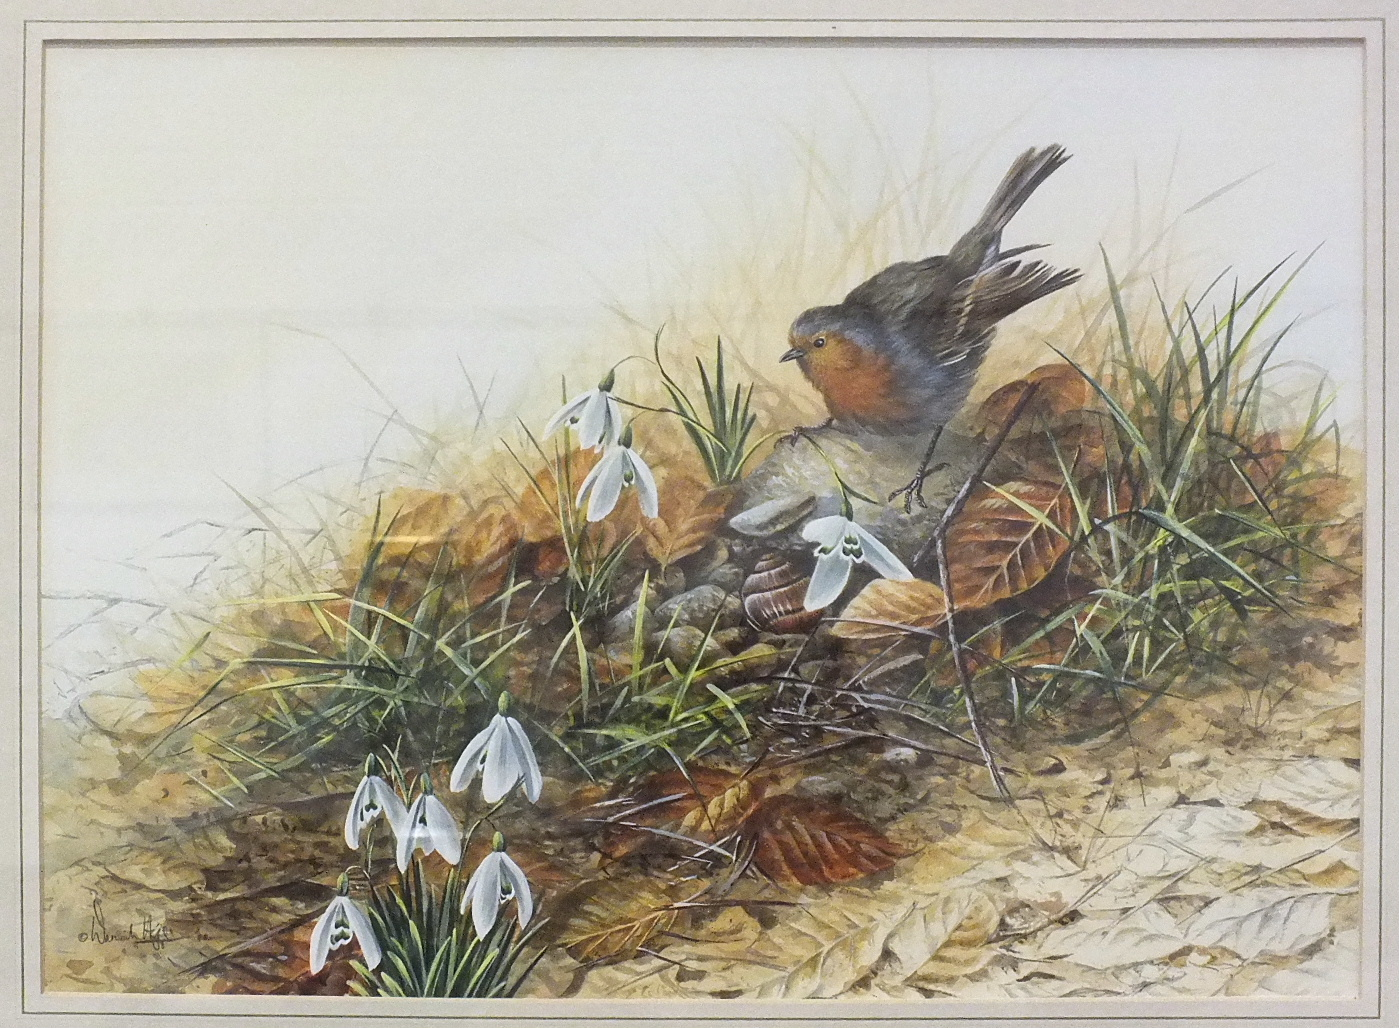 Lot 99 - •Warwick Higgs (British, b.1956) GARDENING - ROBIN Signed gouache, dated '88, 36 x 49.5cm.